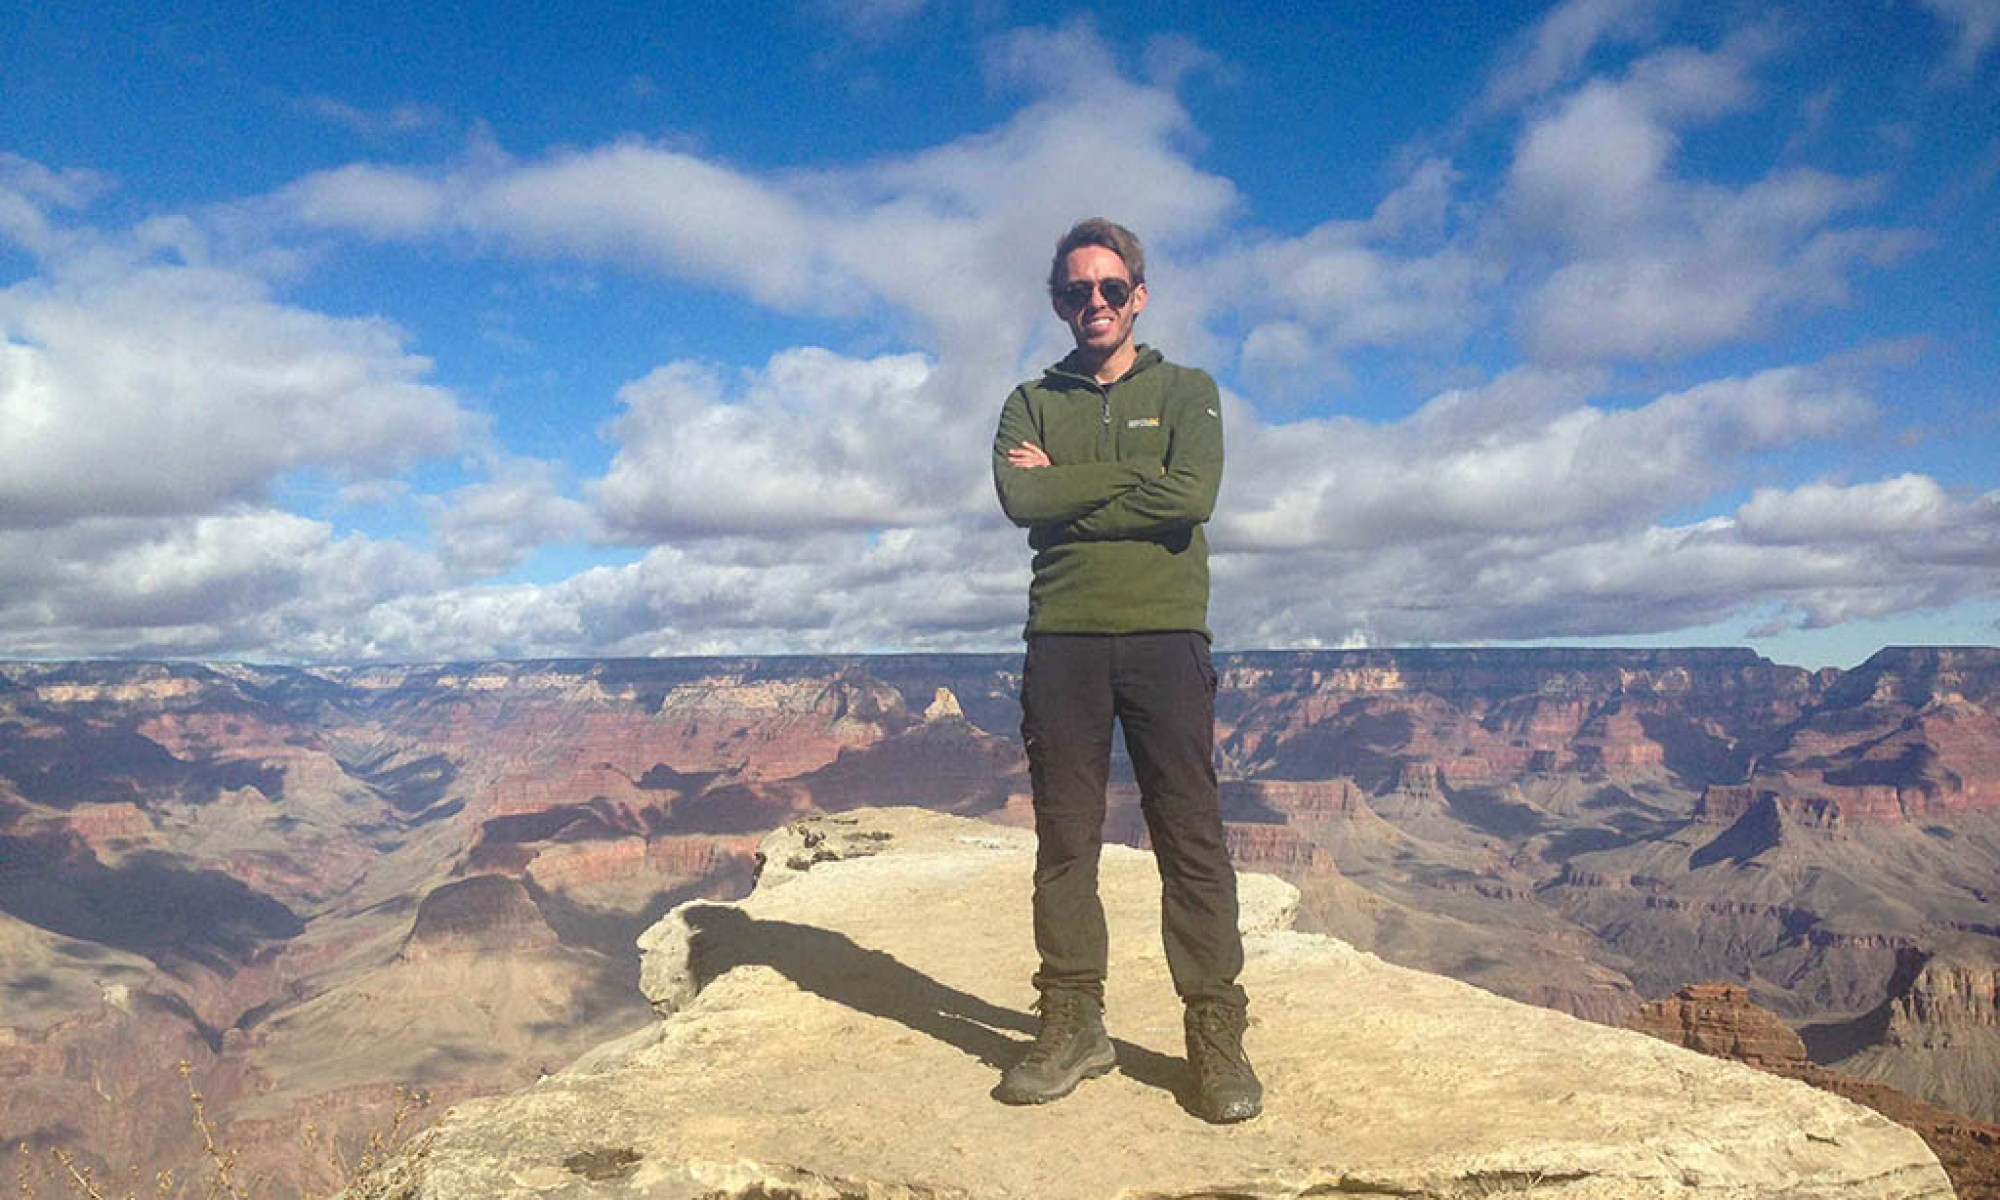 Lee took a three-month sabbatical to travel in South America